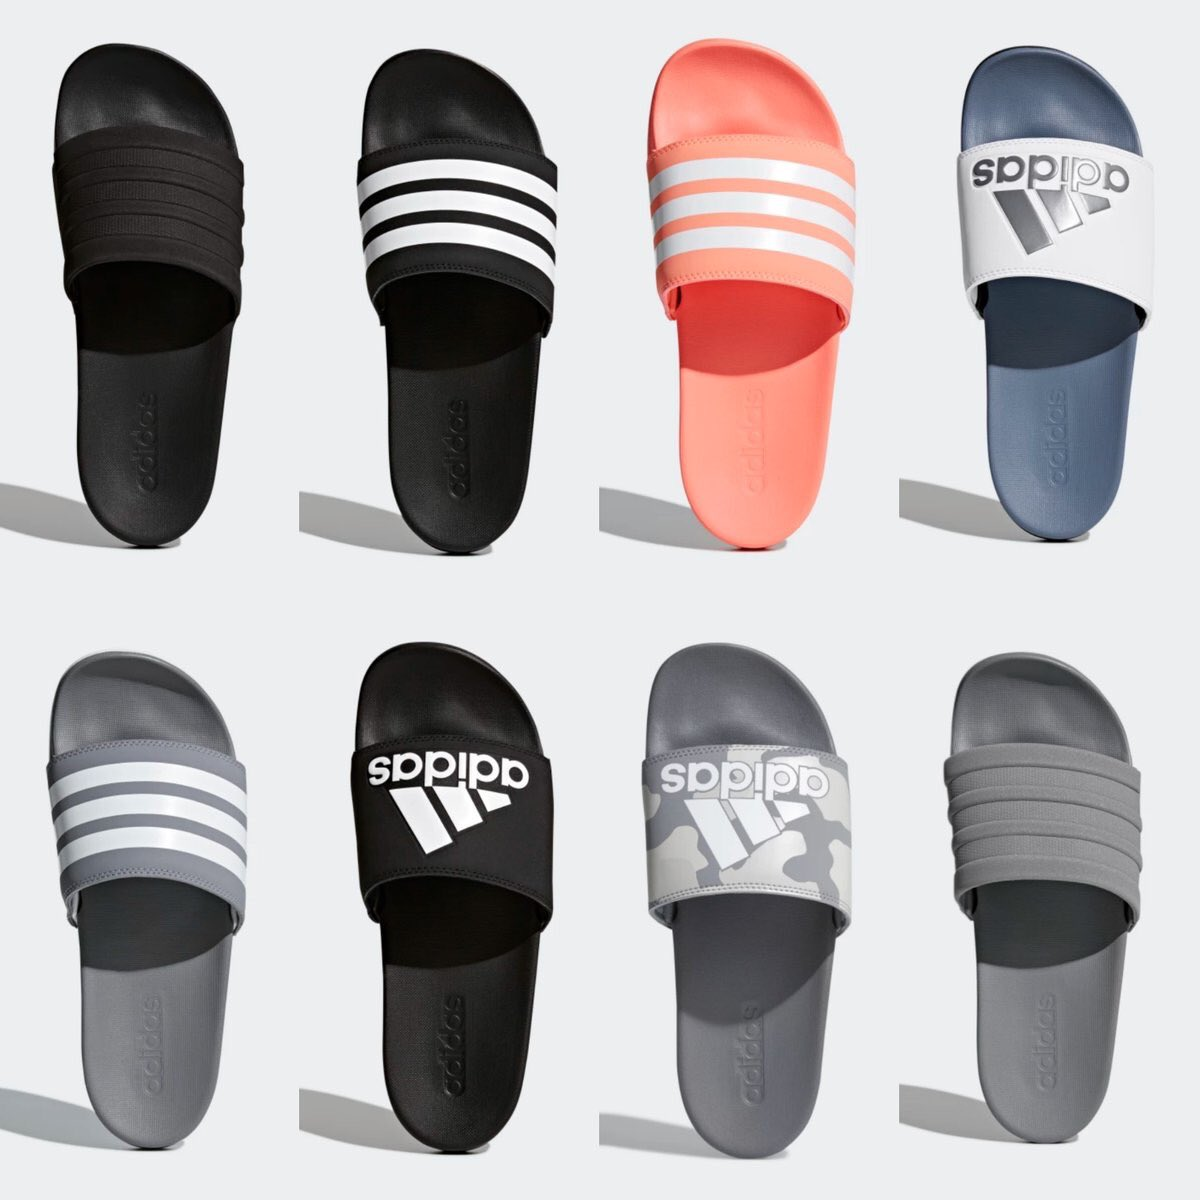 Ad: 30% off adidas Adilette Cloudform Slides at $24.50 each + FREE shipping, use code ADIFAM =&gt;  http:// bit.ly/2EGvtQn  &nbsp;  <br>http://pic.twitter.com/DWY4Rx2Ctt